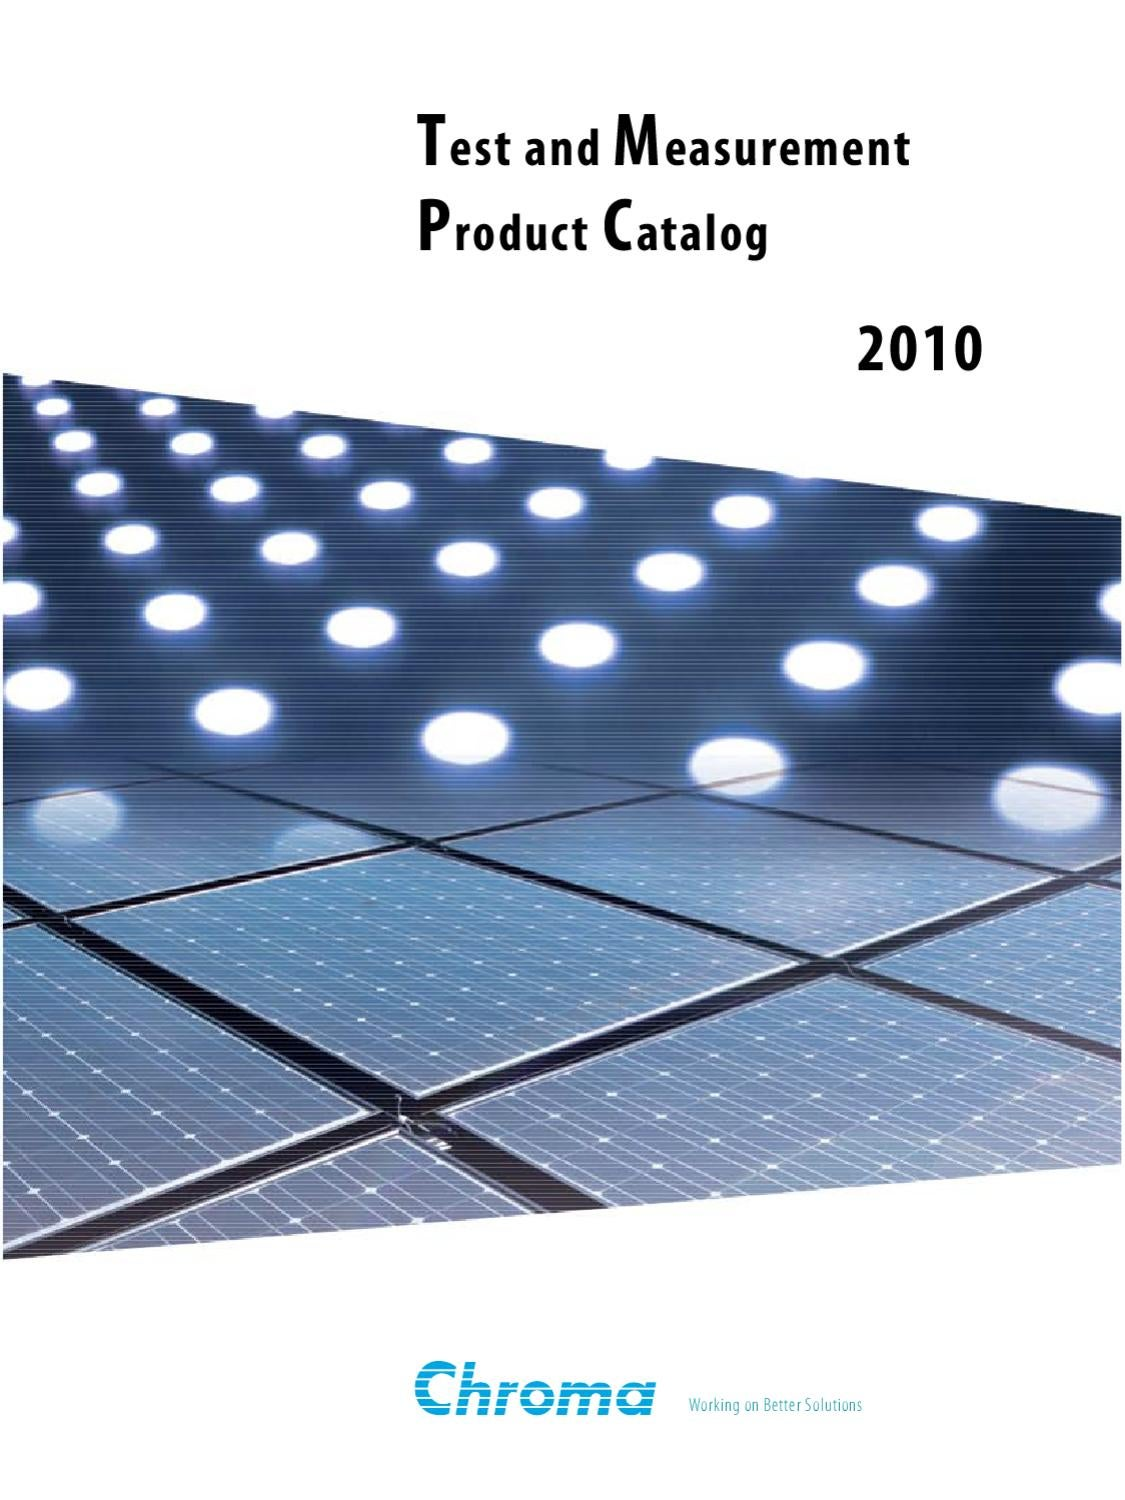 2010 Chroma Product Catalog by Scott